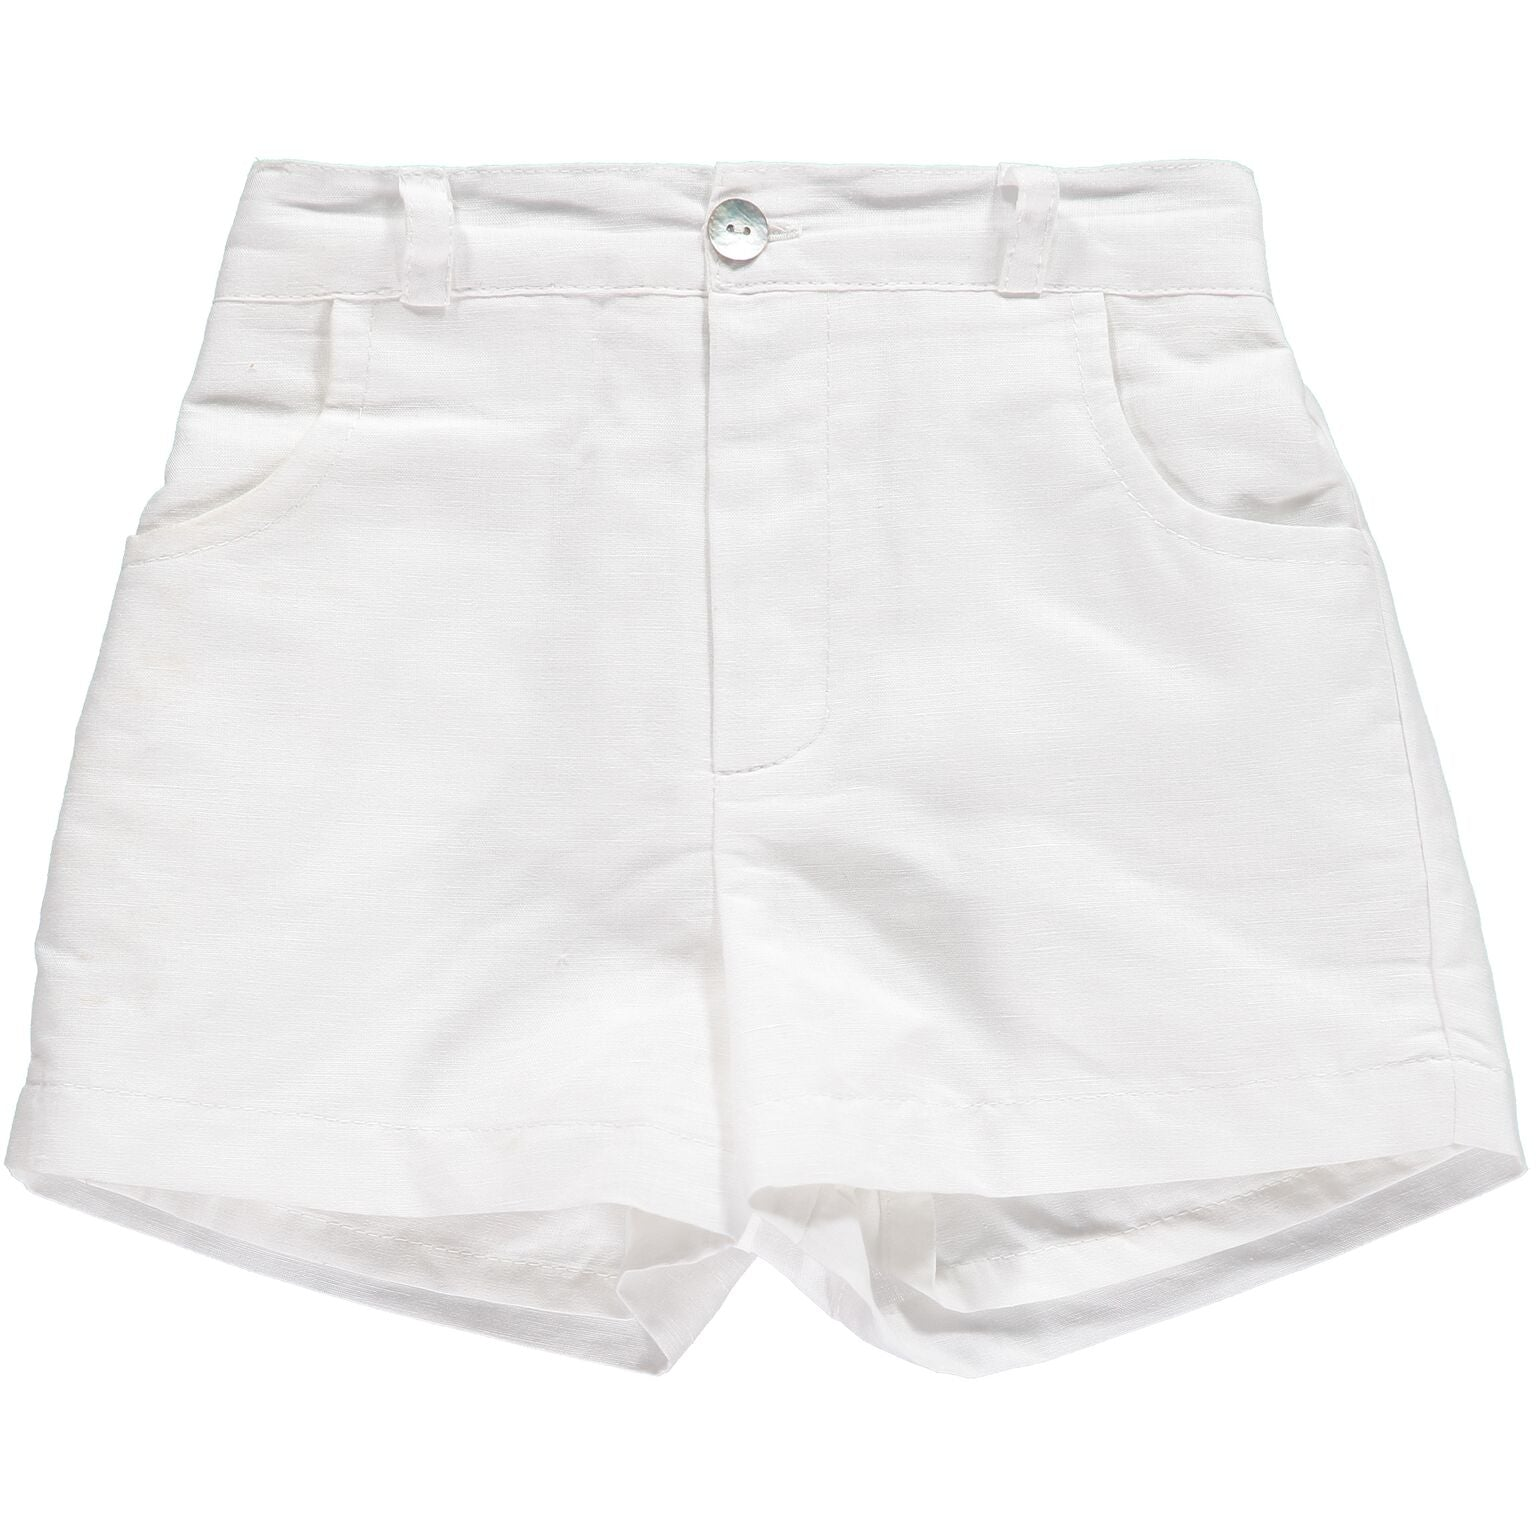 huge range of best loved meet White Linen Shorts